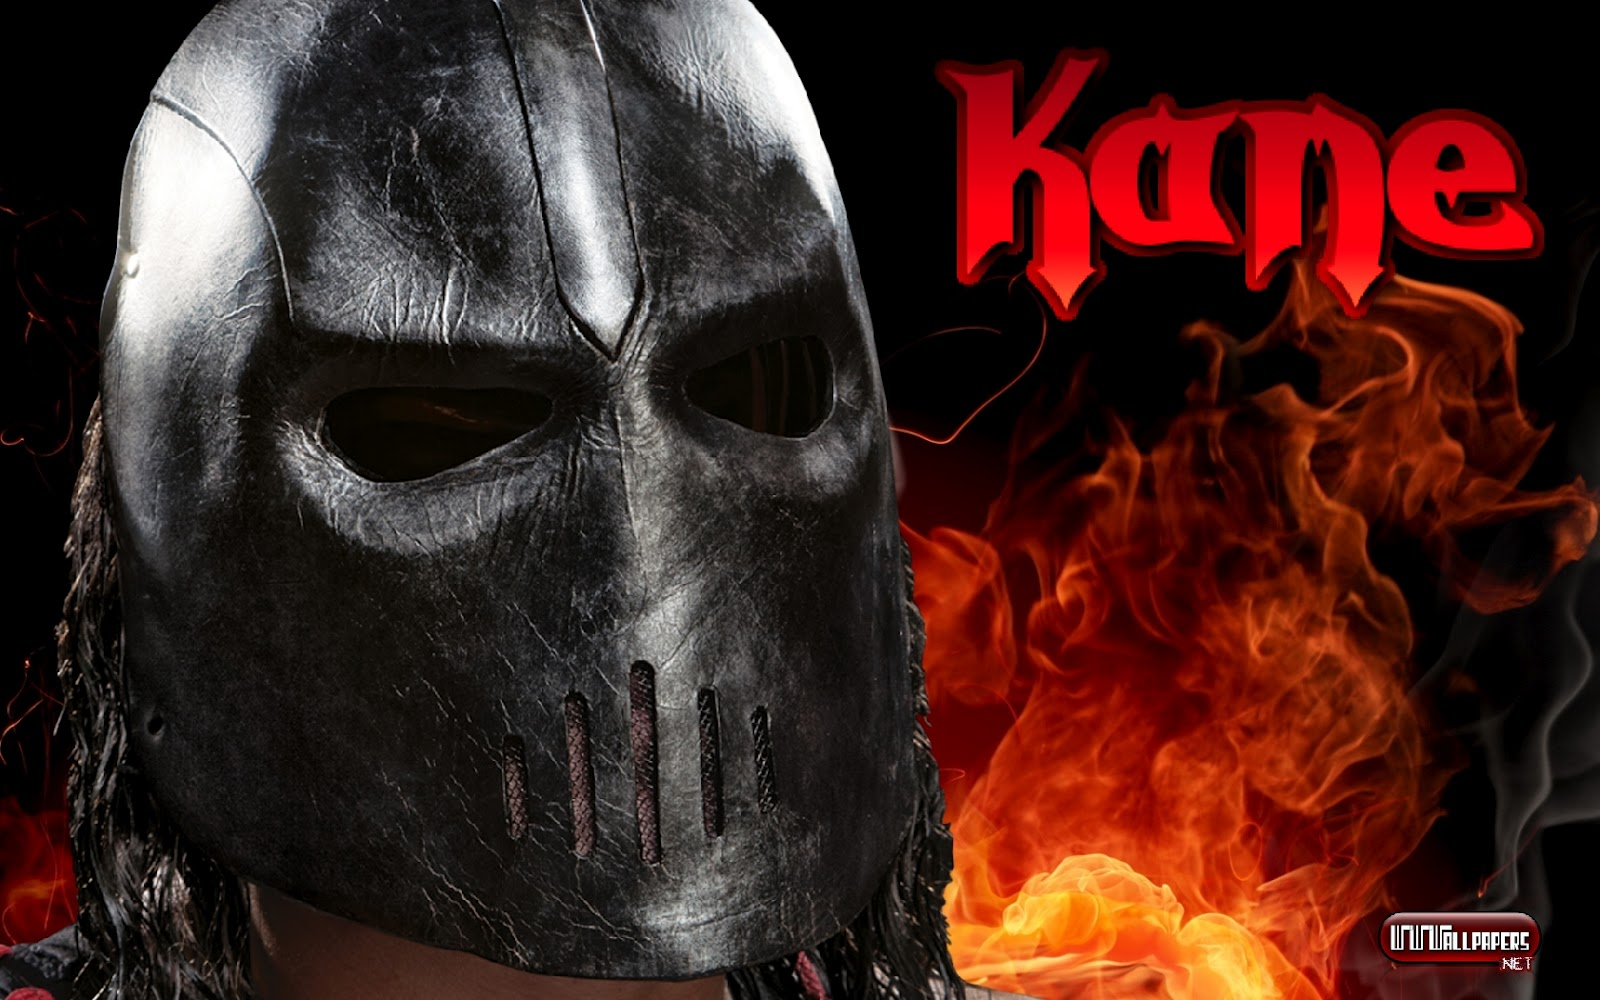 Kane Wwe Latest Hd Wallpaper 2013 14: Wallpaper Pictures Gallery